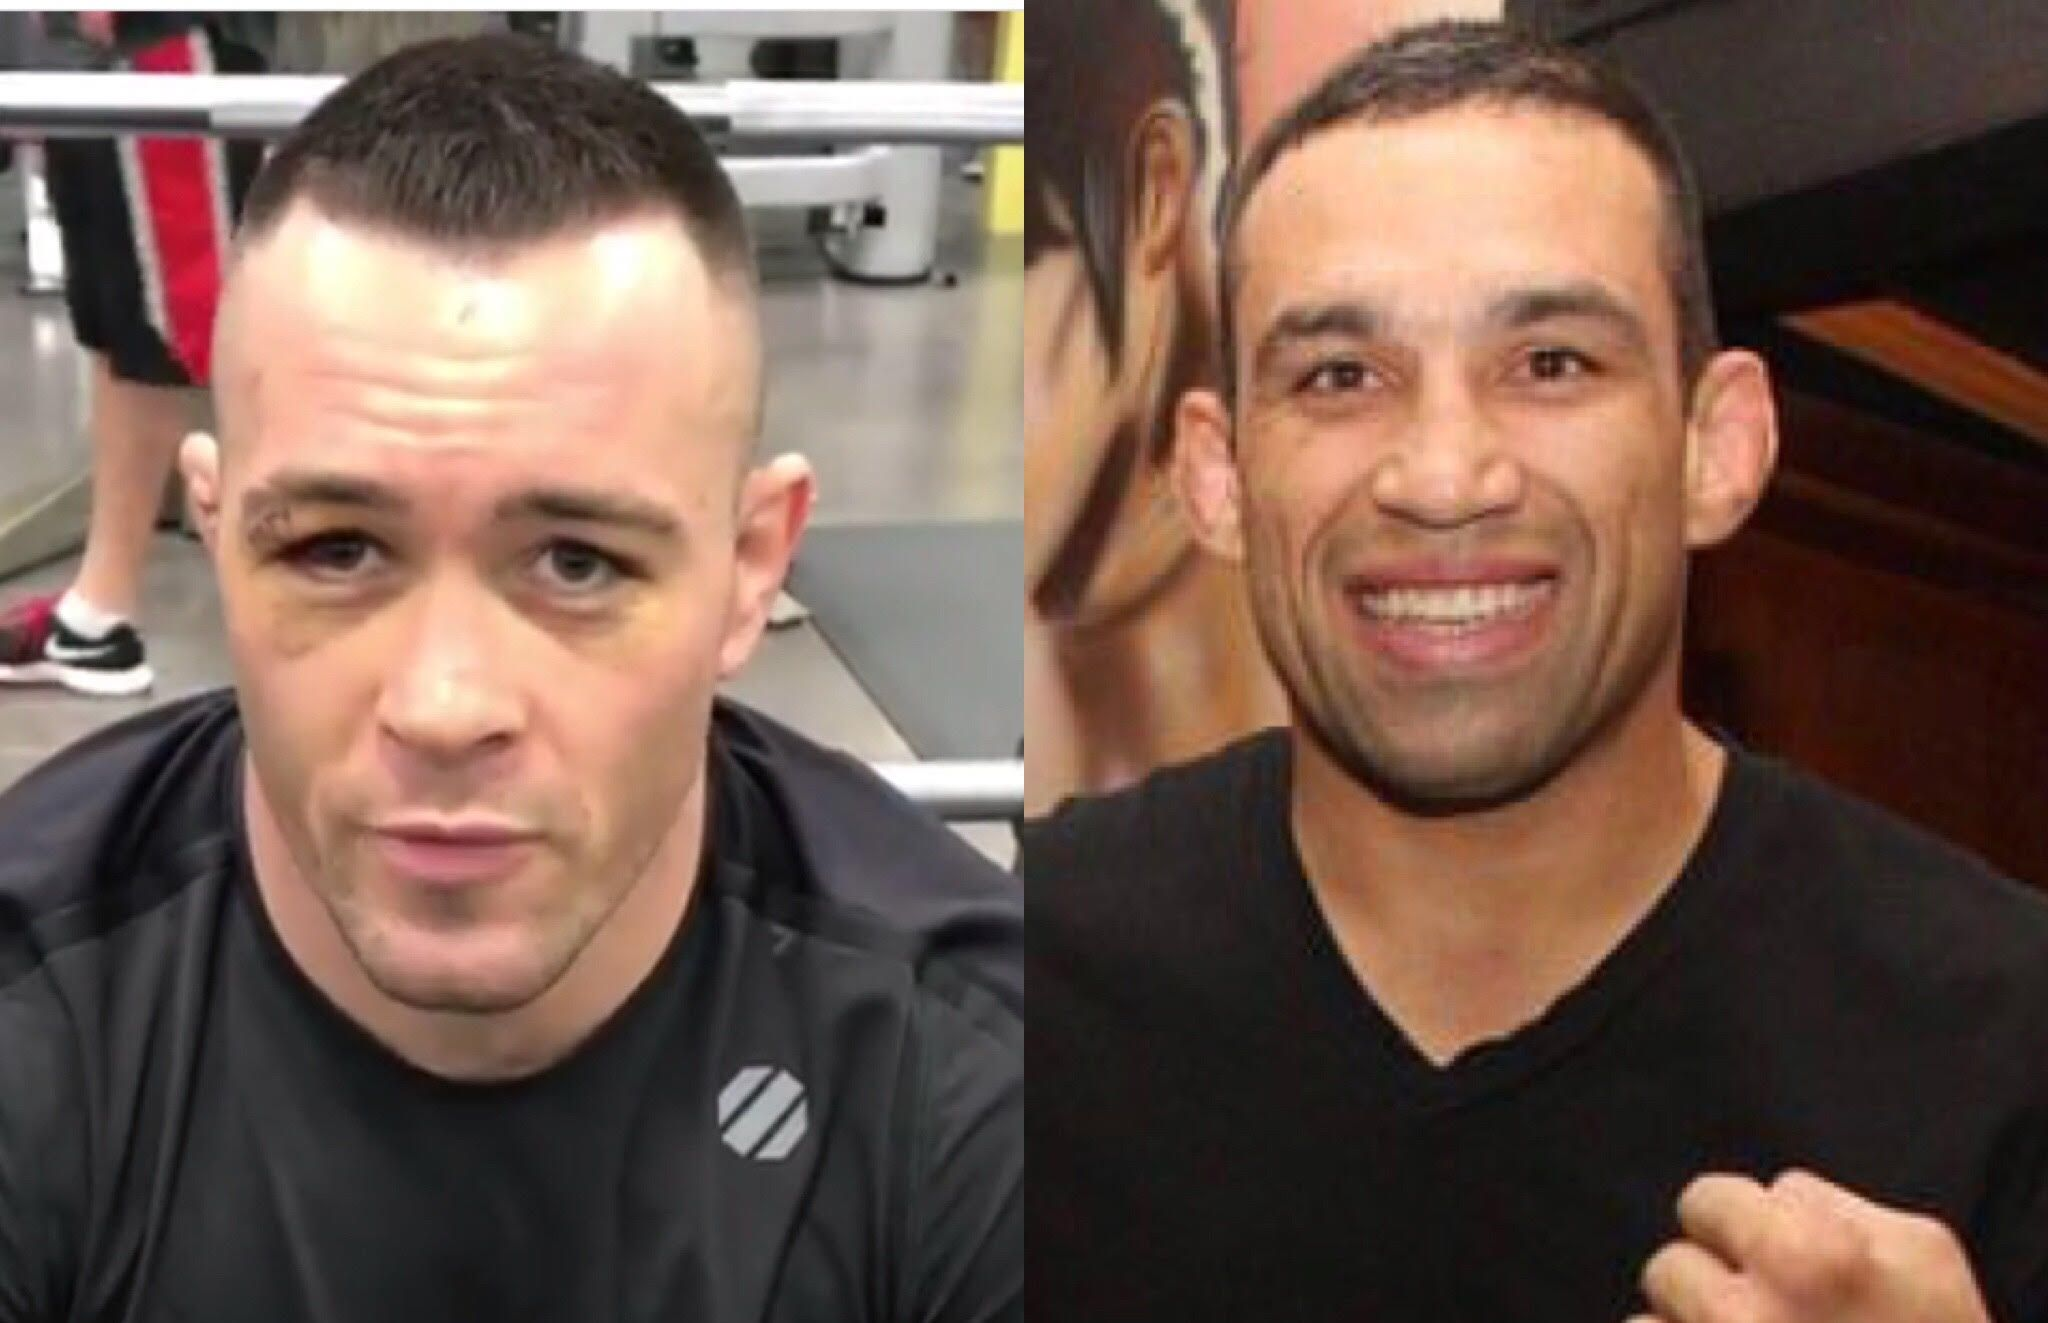 Werdum fined $600 for throwing boomerang at Colby -